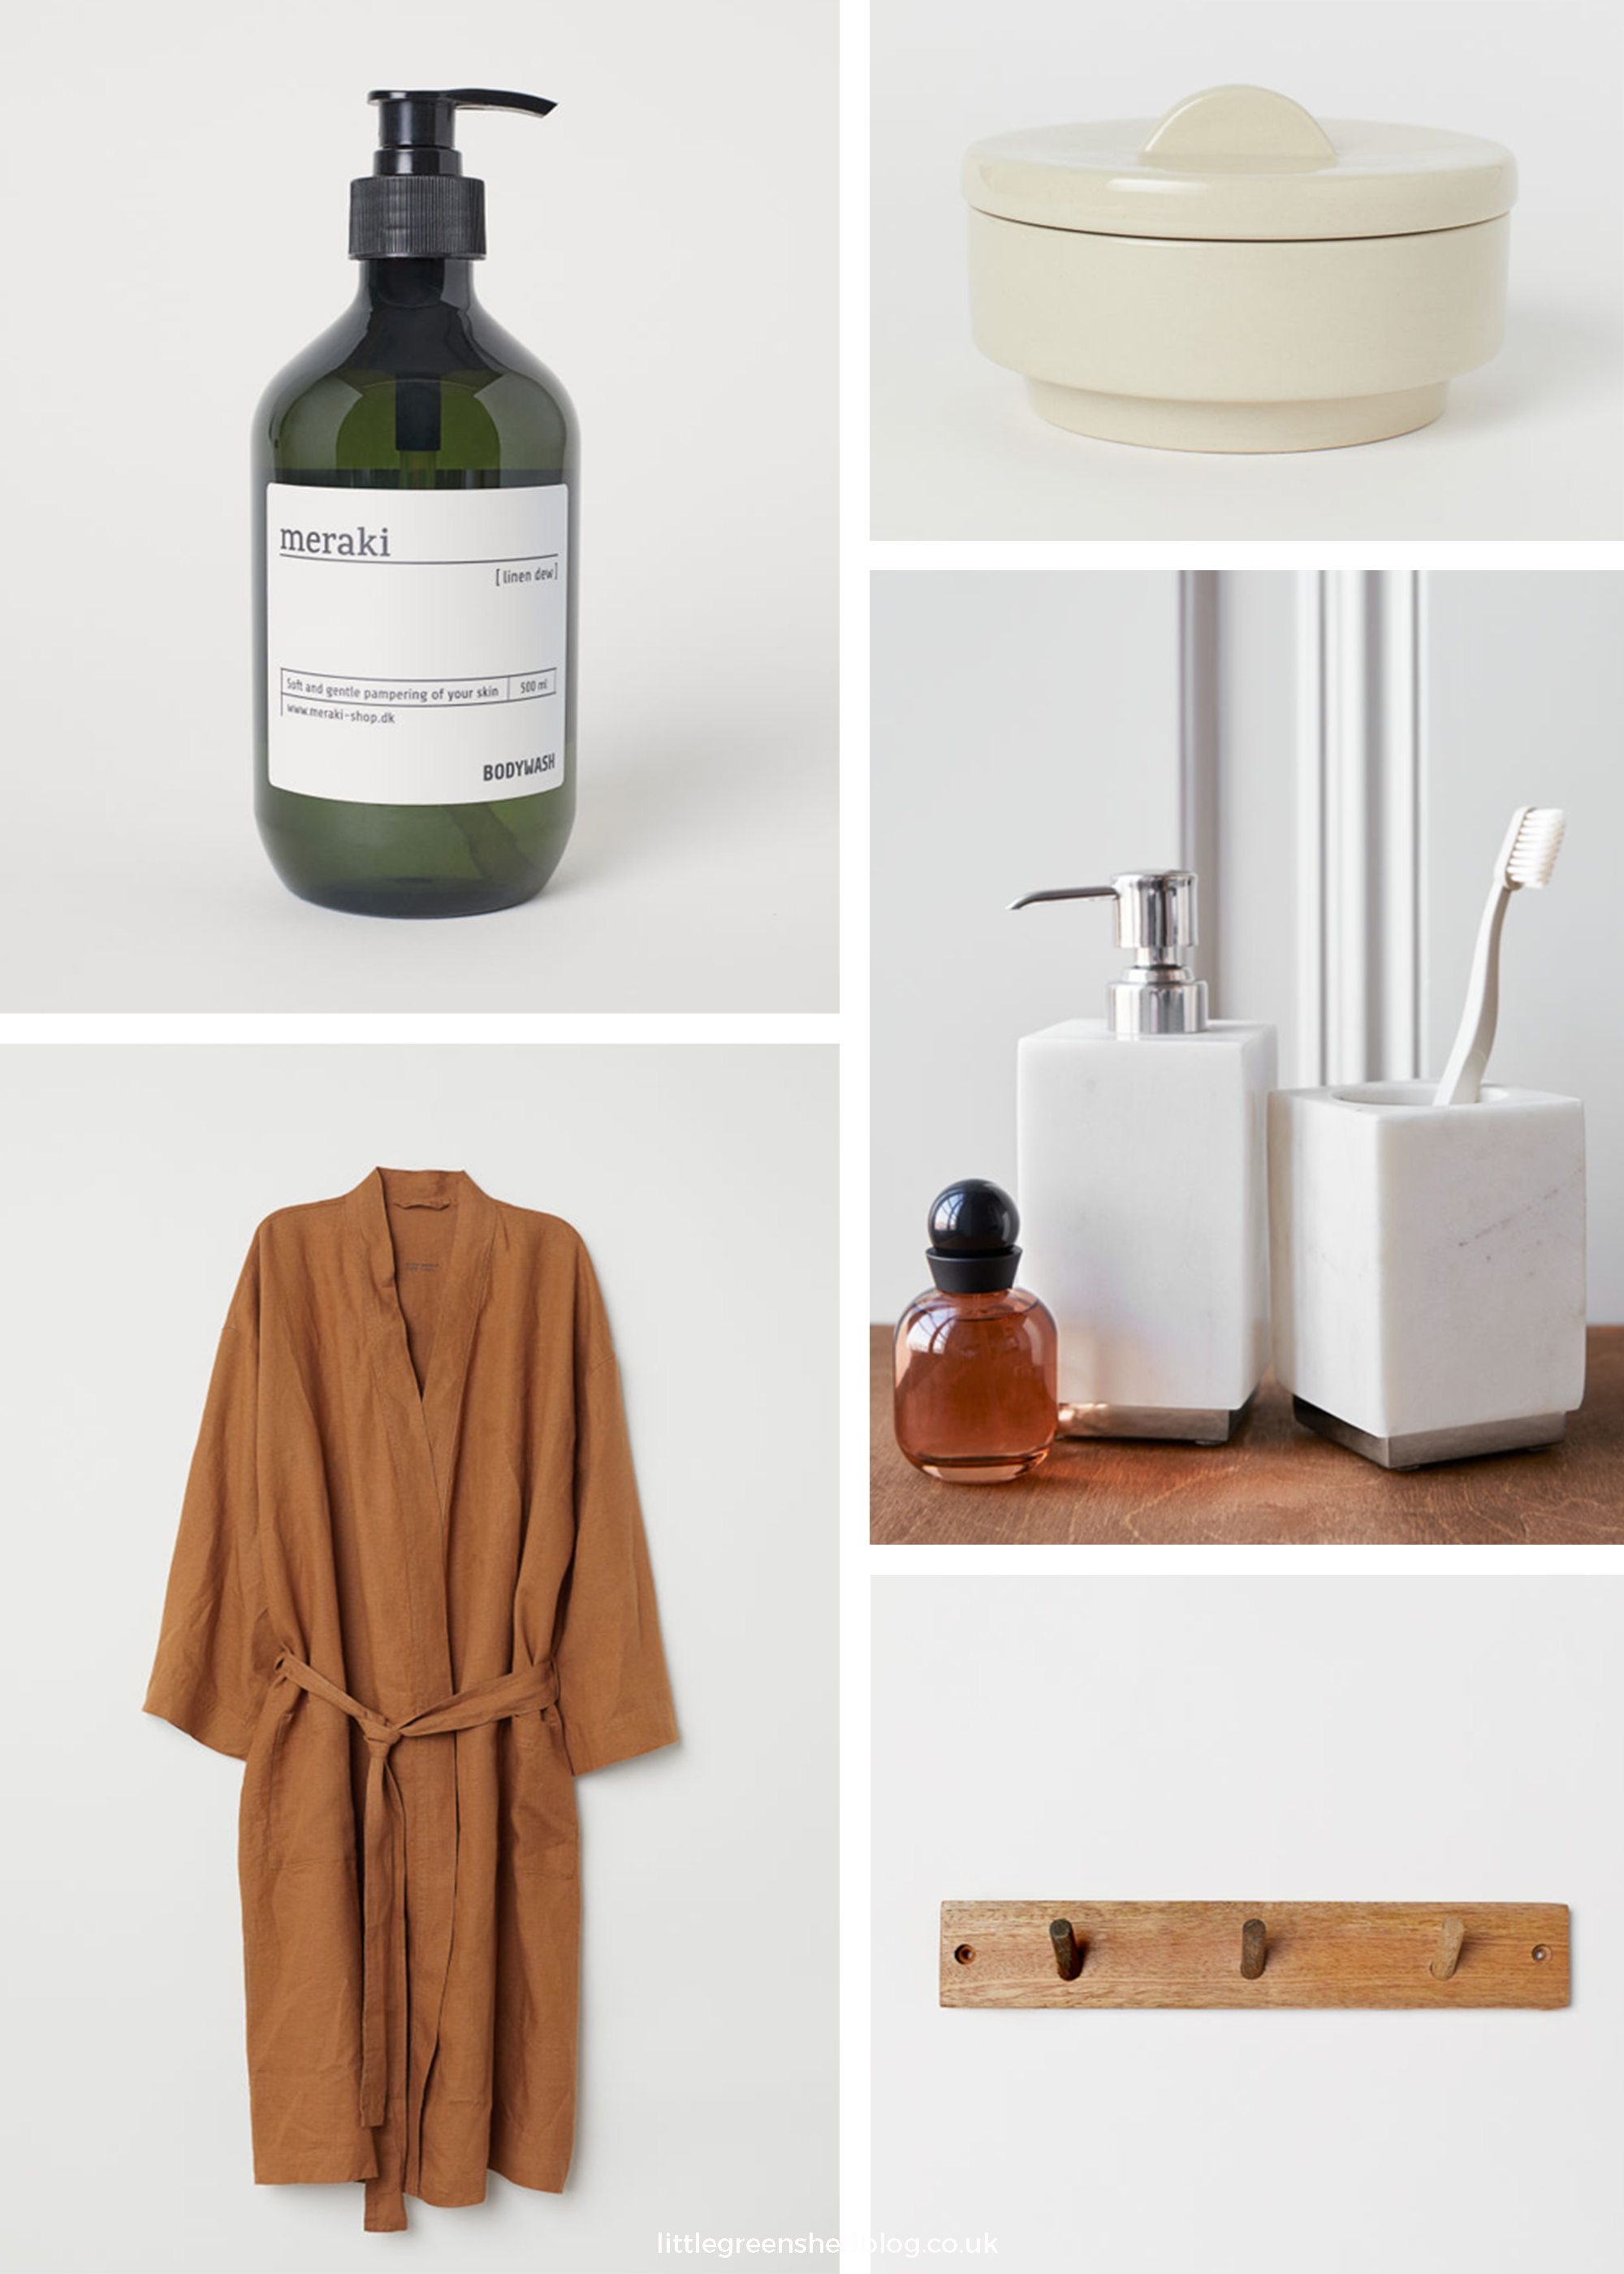 Interiors   10 essential items from HM Home for the new bathroom